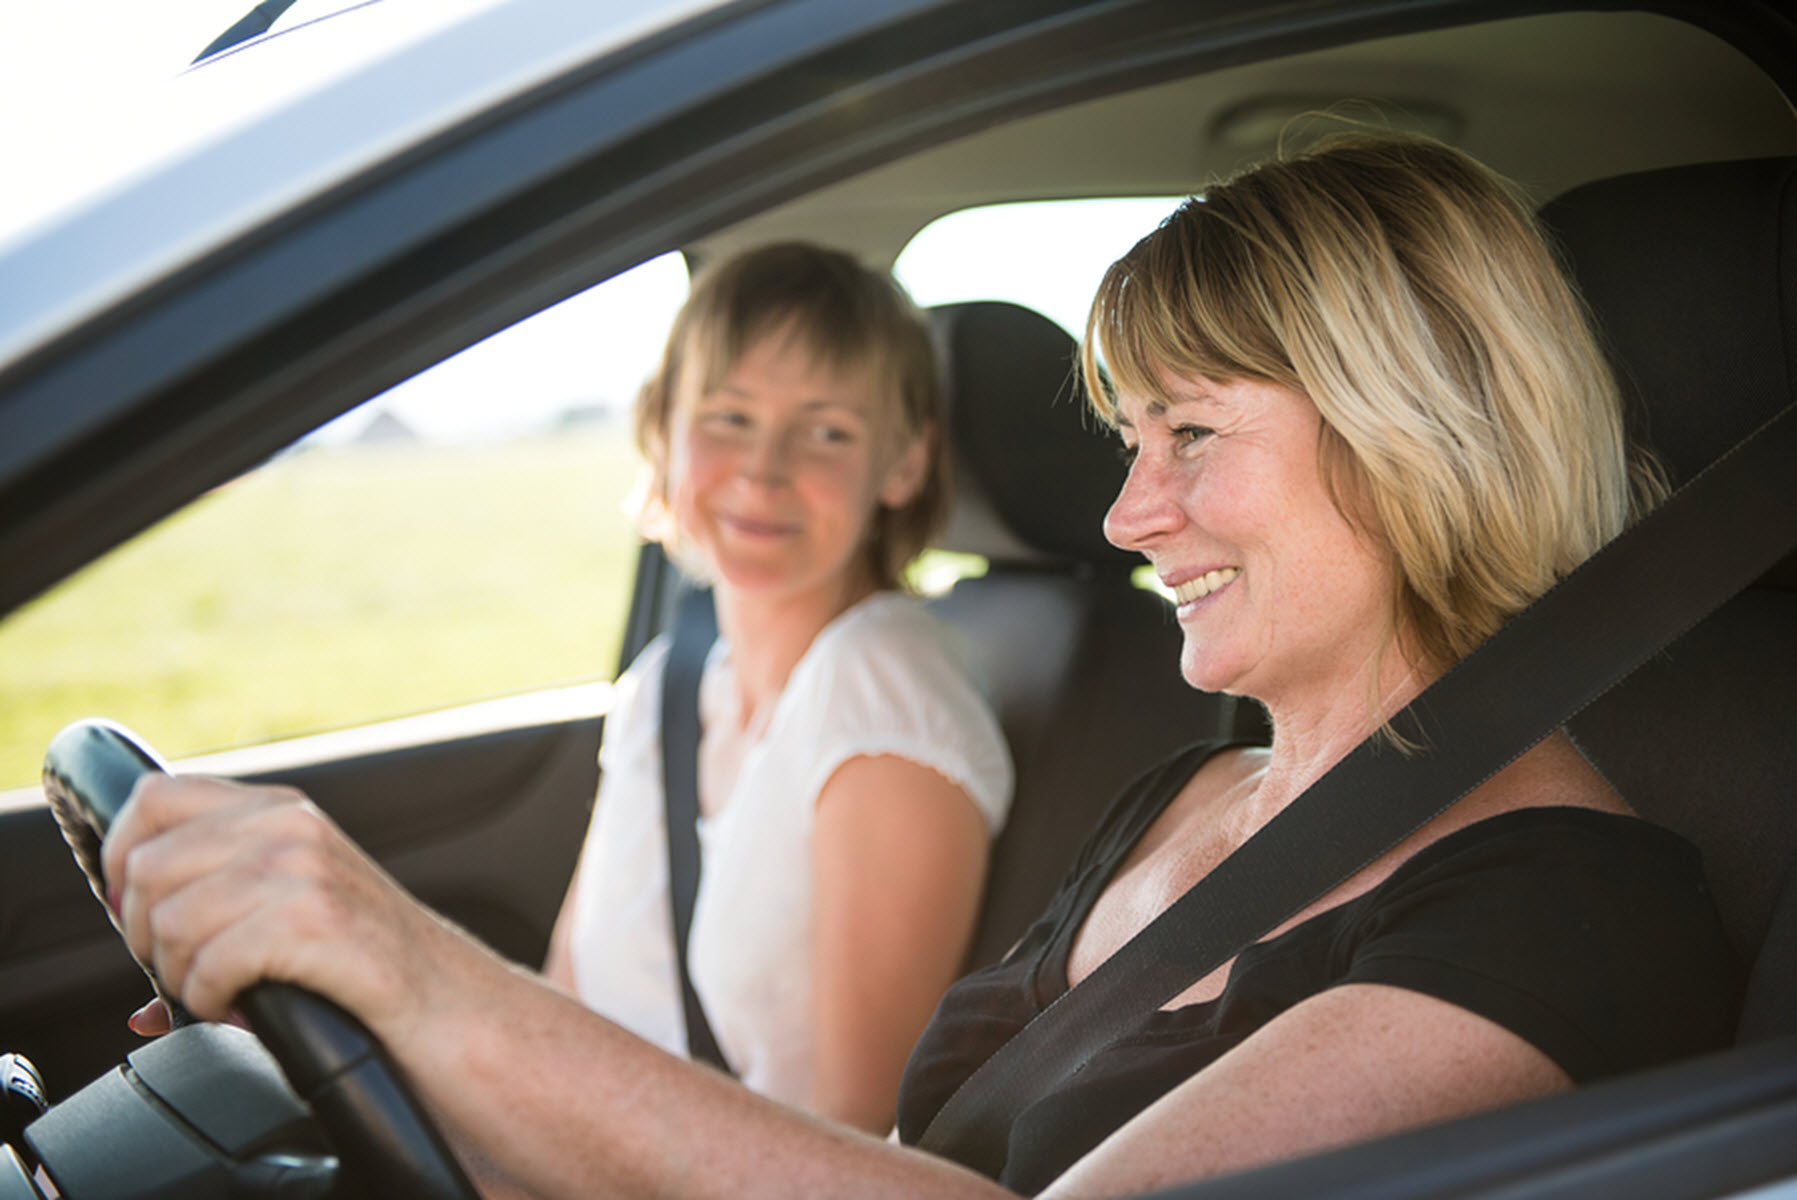 Elder Care in Gilbert AZ: Compromises with a Driving Senior